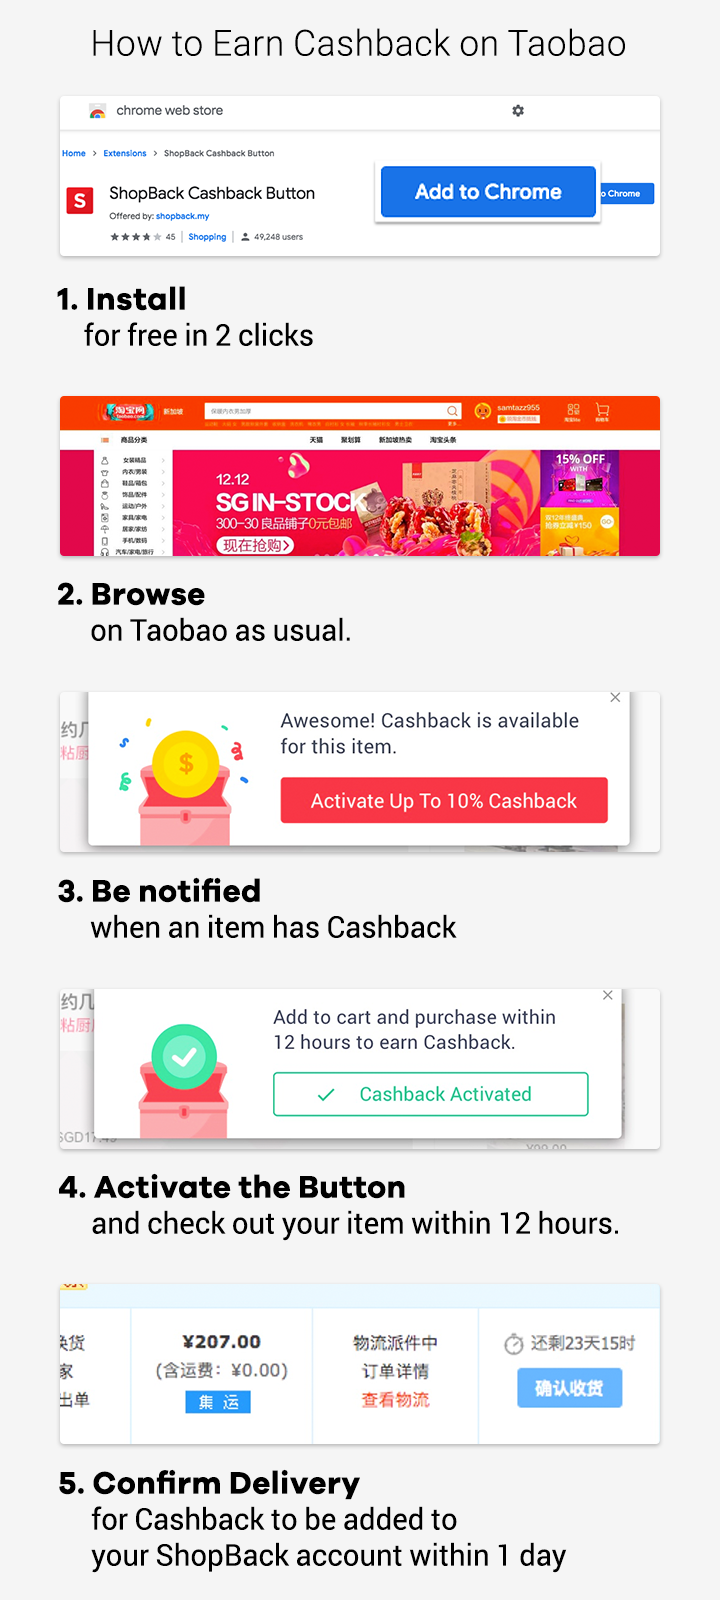 How to earn Cashback on Taobao